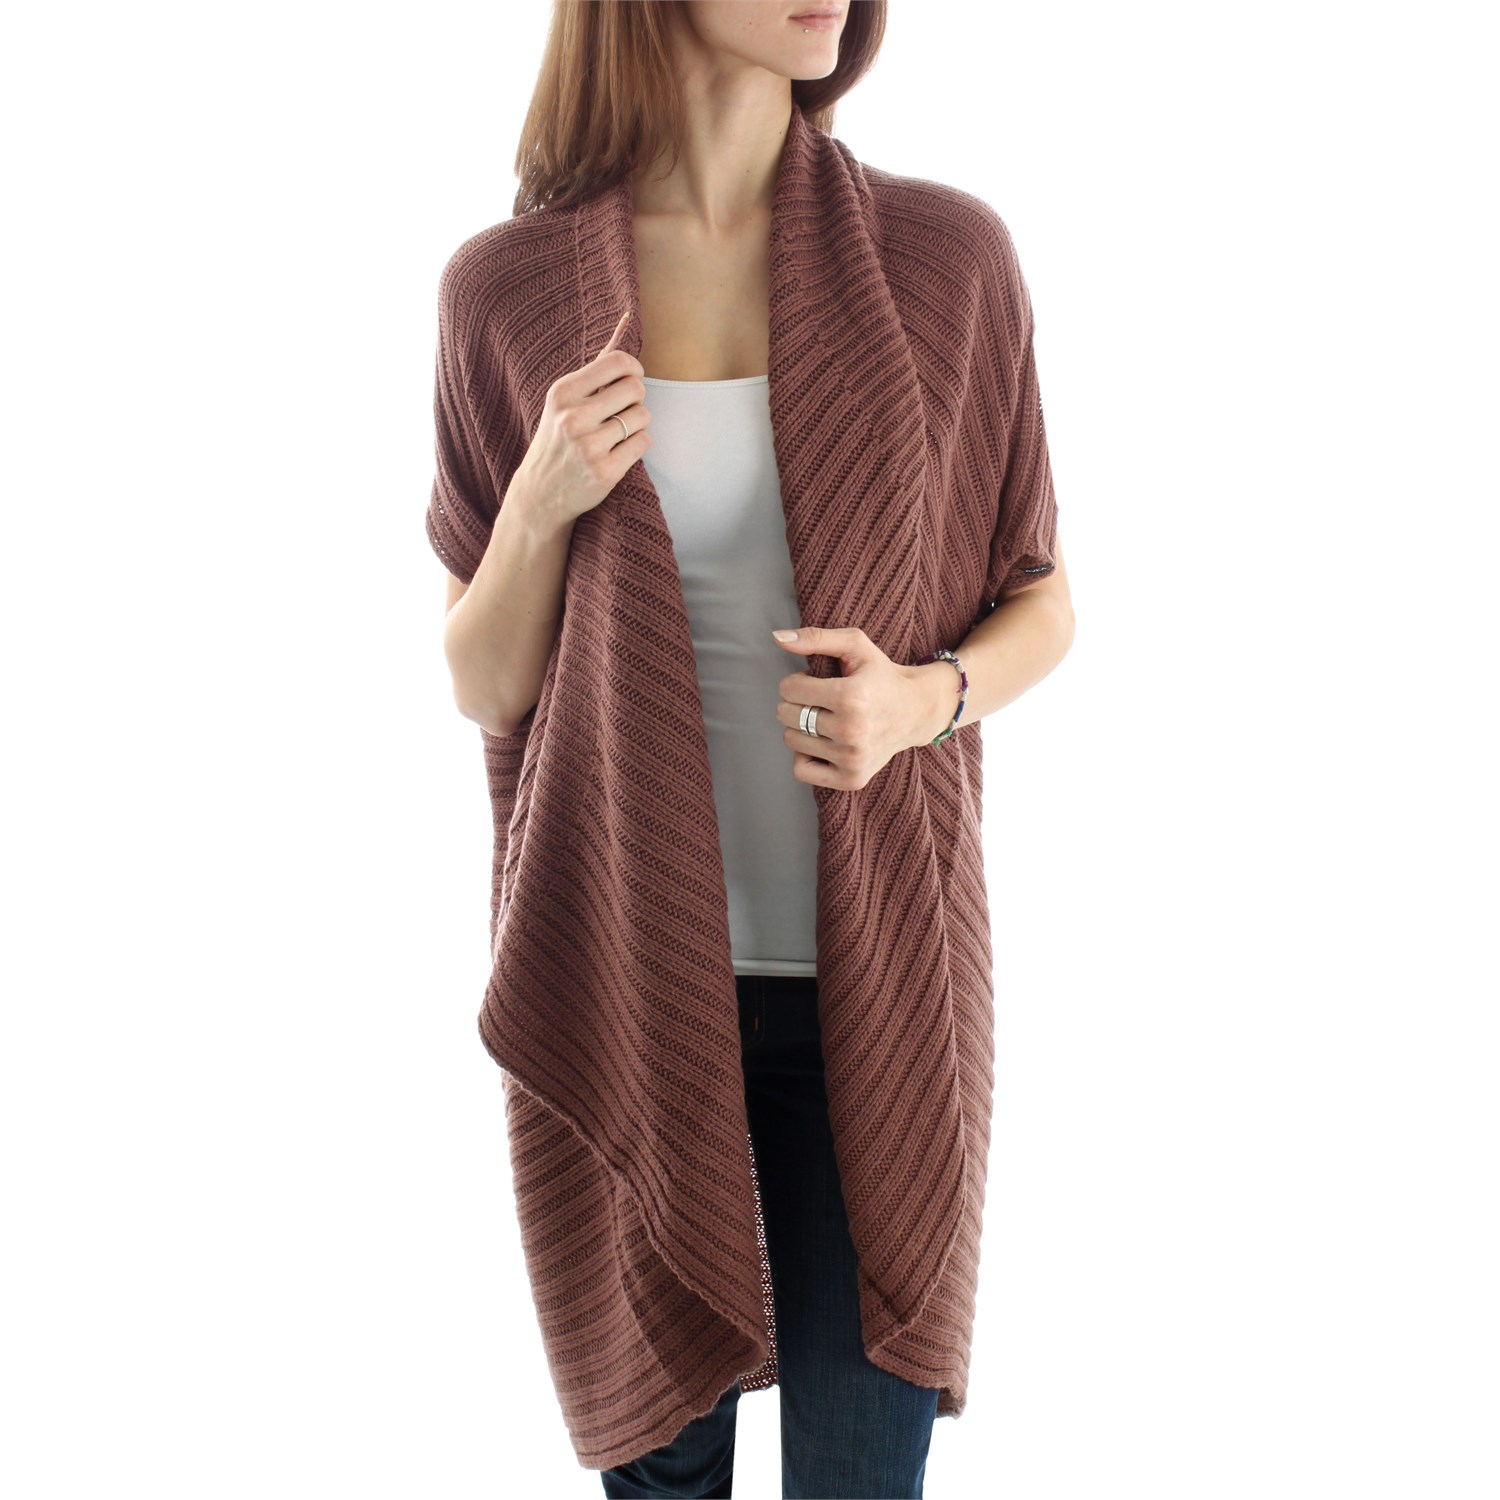 Women's cardigans are lightweight sweaters that make an ideal addition to your wardrobe, especially when transitioning between seasons. They're helpful for layering when you need to change up your look for fluctuating temperatures between the indoors and outdoors.